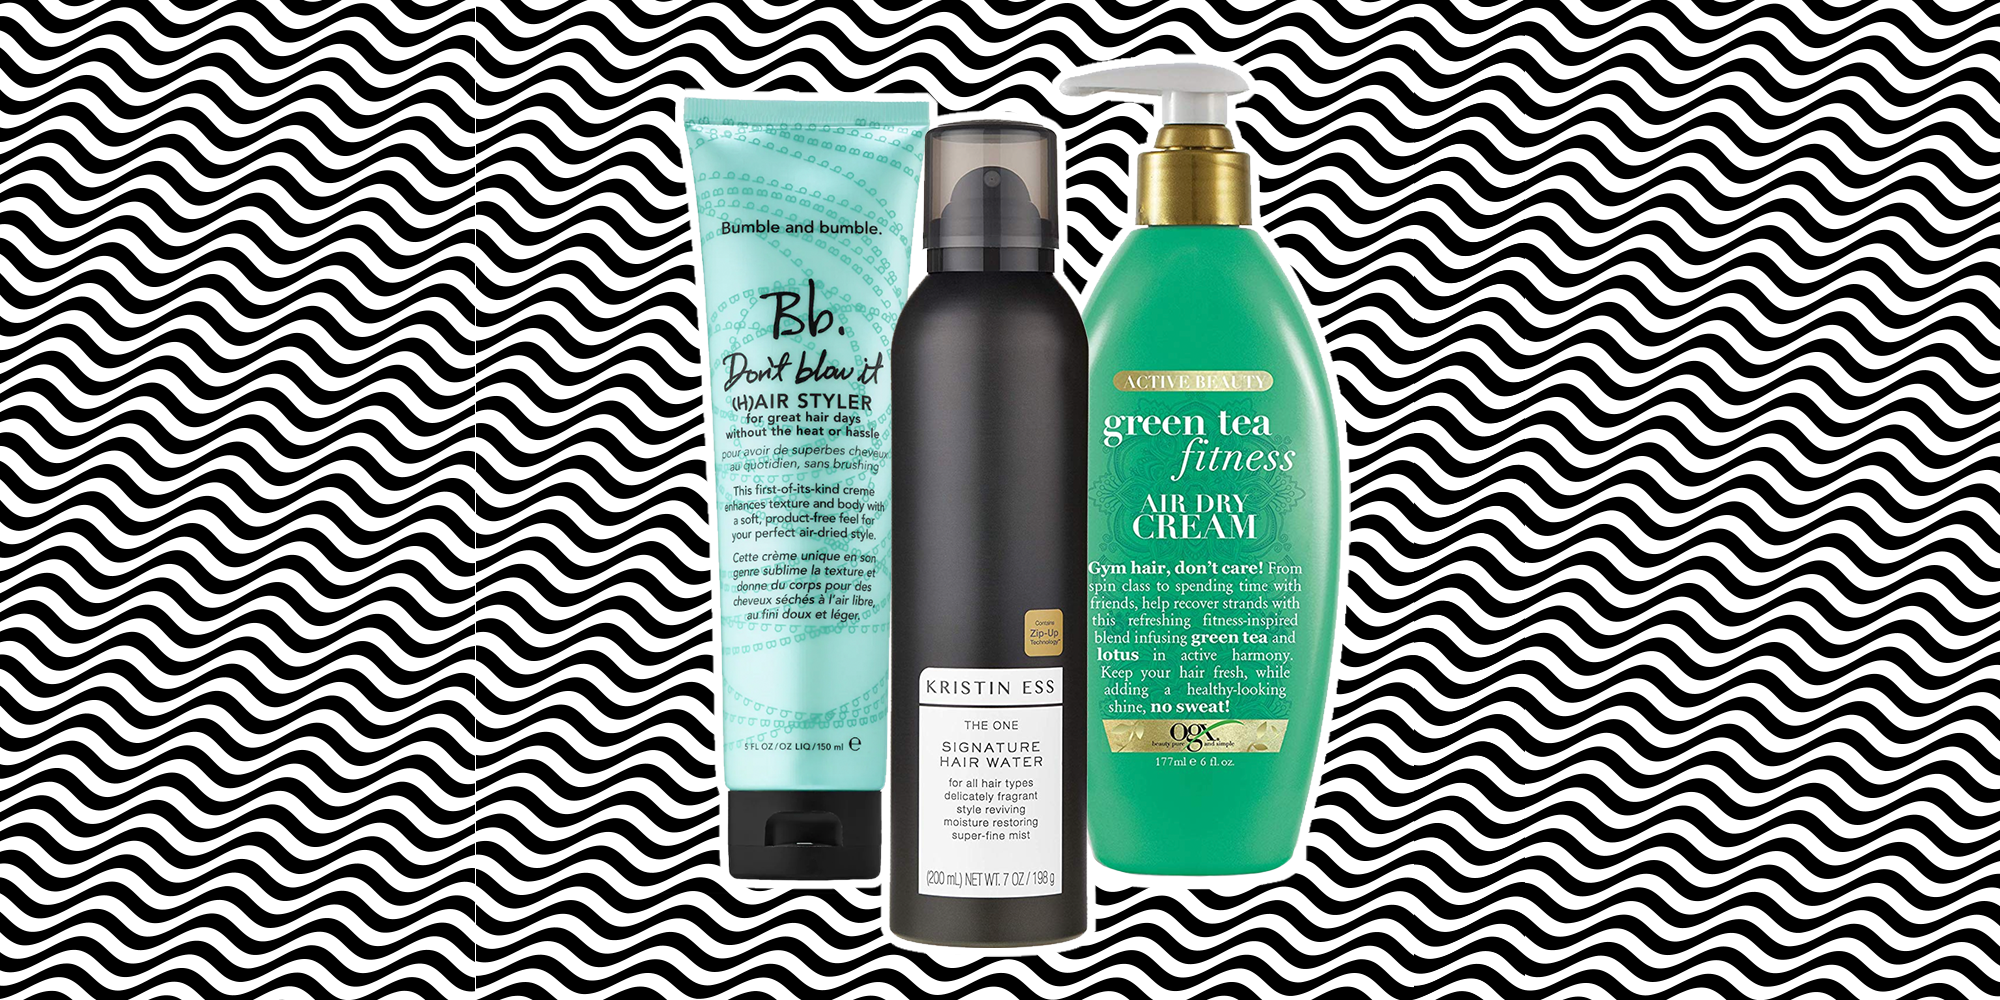 The Best Products for Air Drying Your Hair